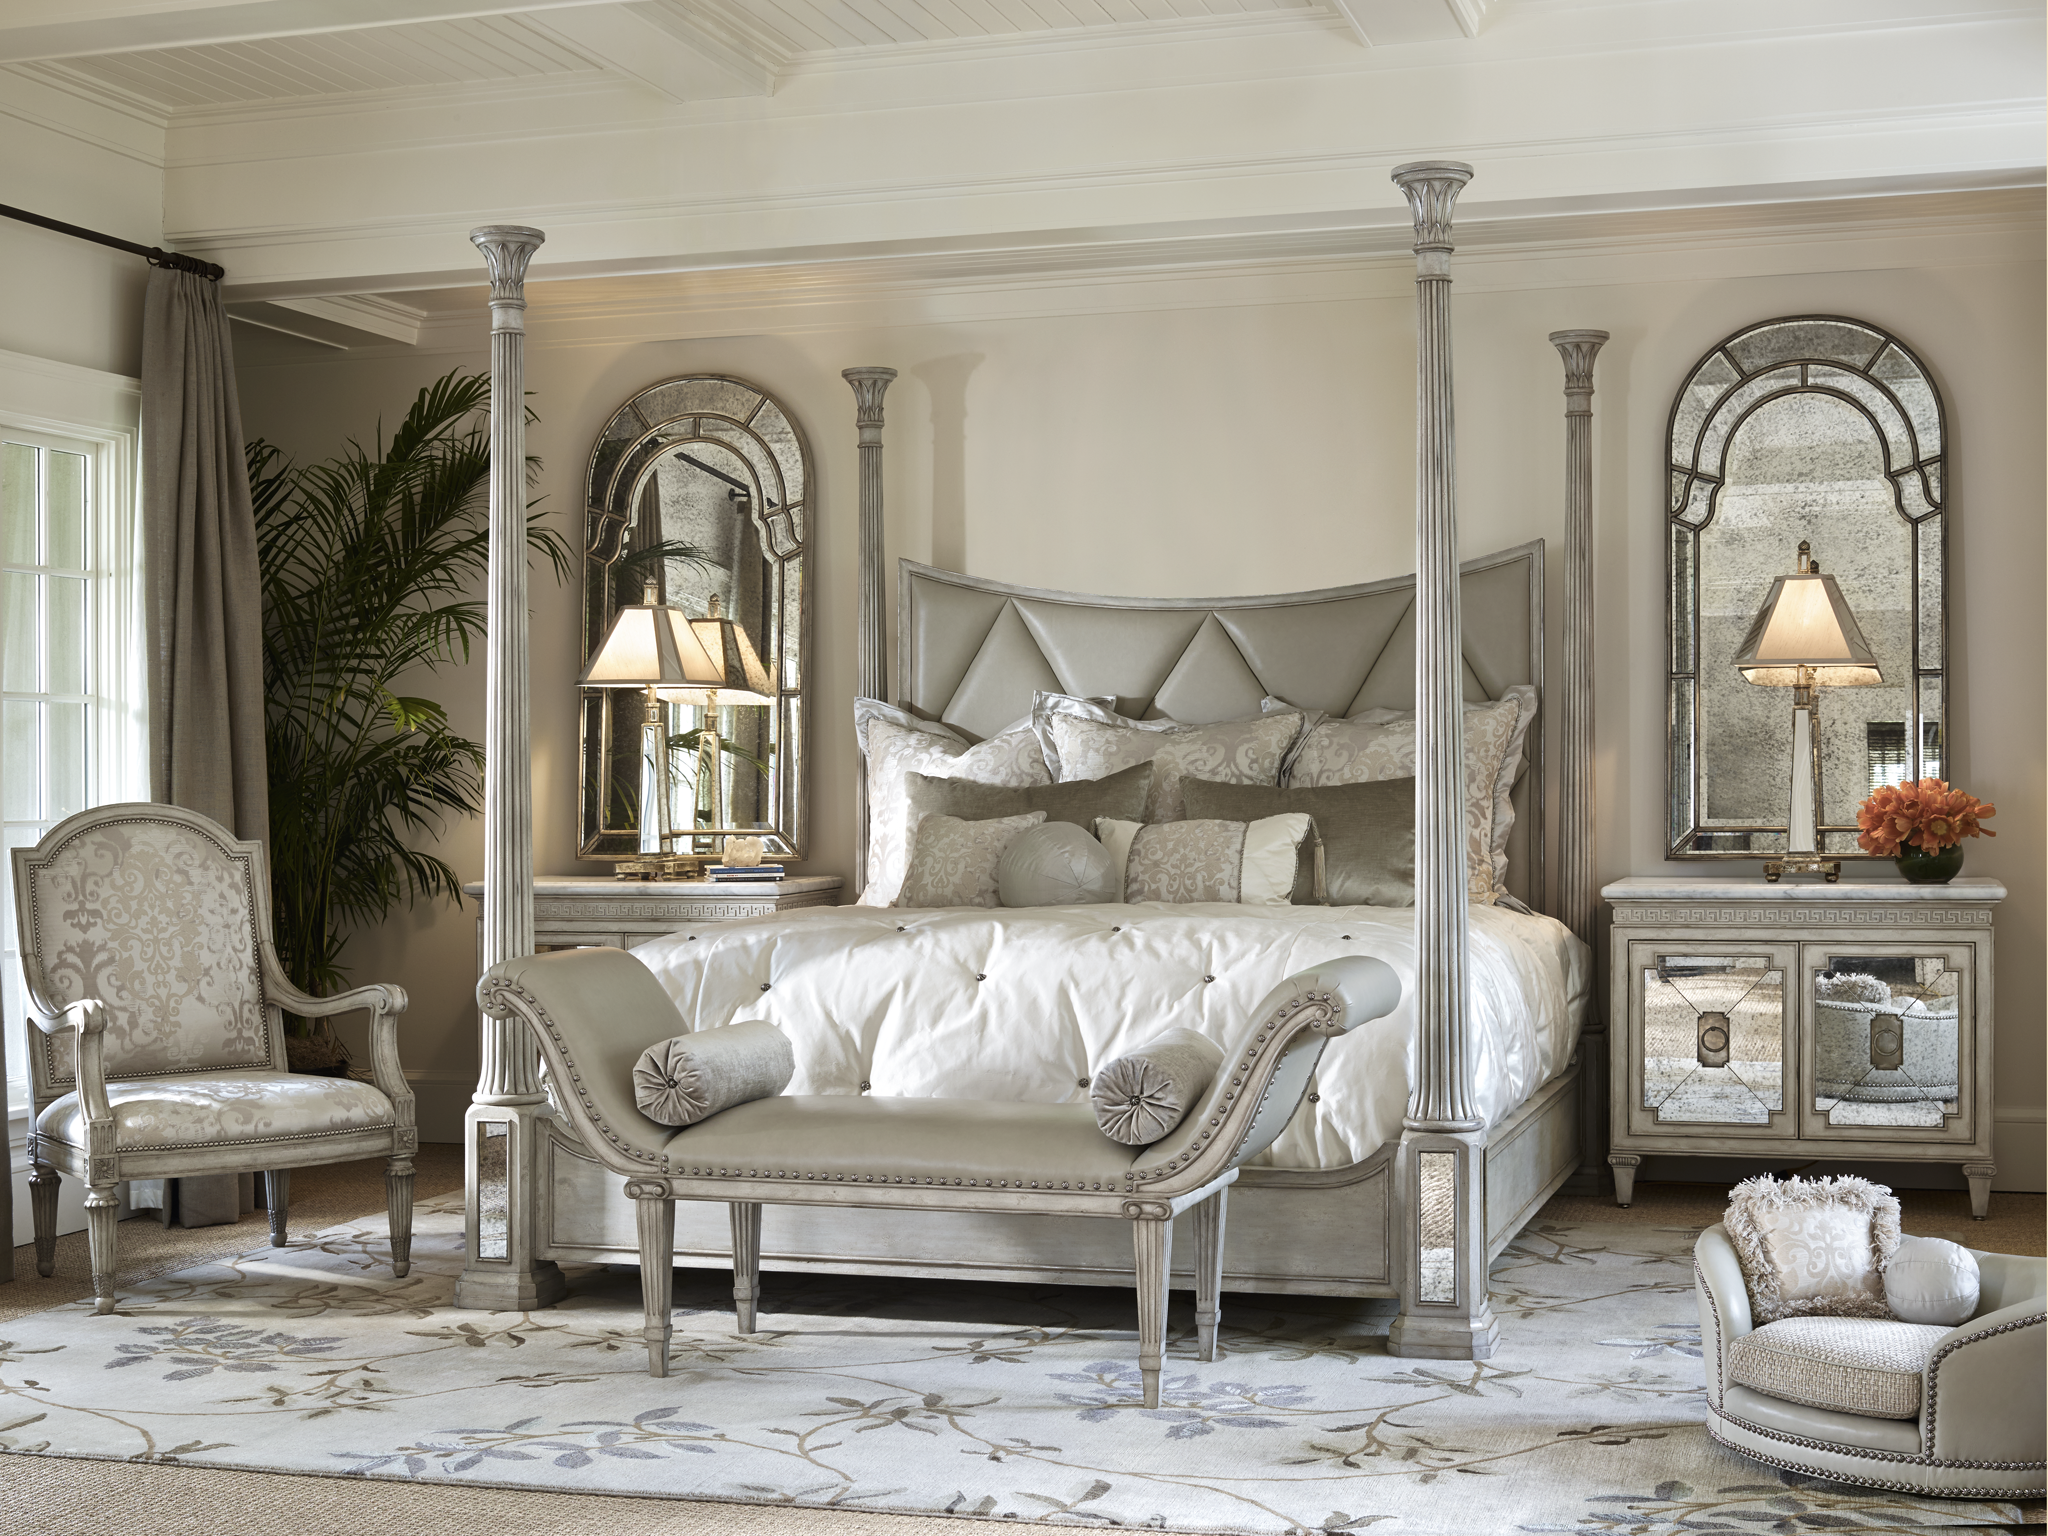 Best The Ionia Four Poster Bed With Diamond Tufted Upholstery 400 x 300